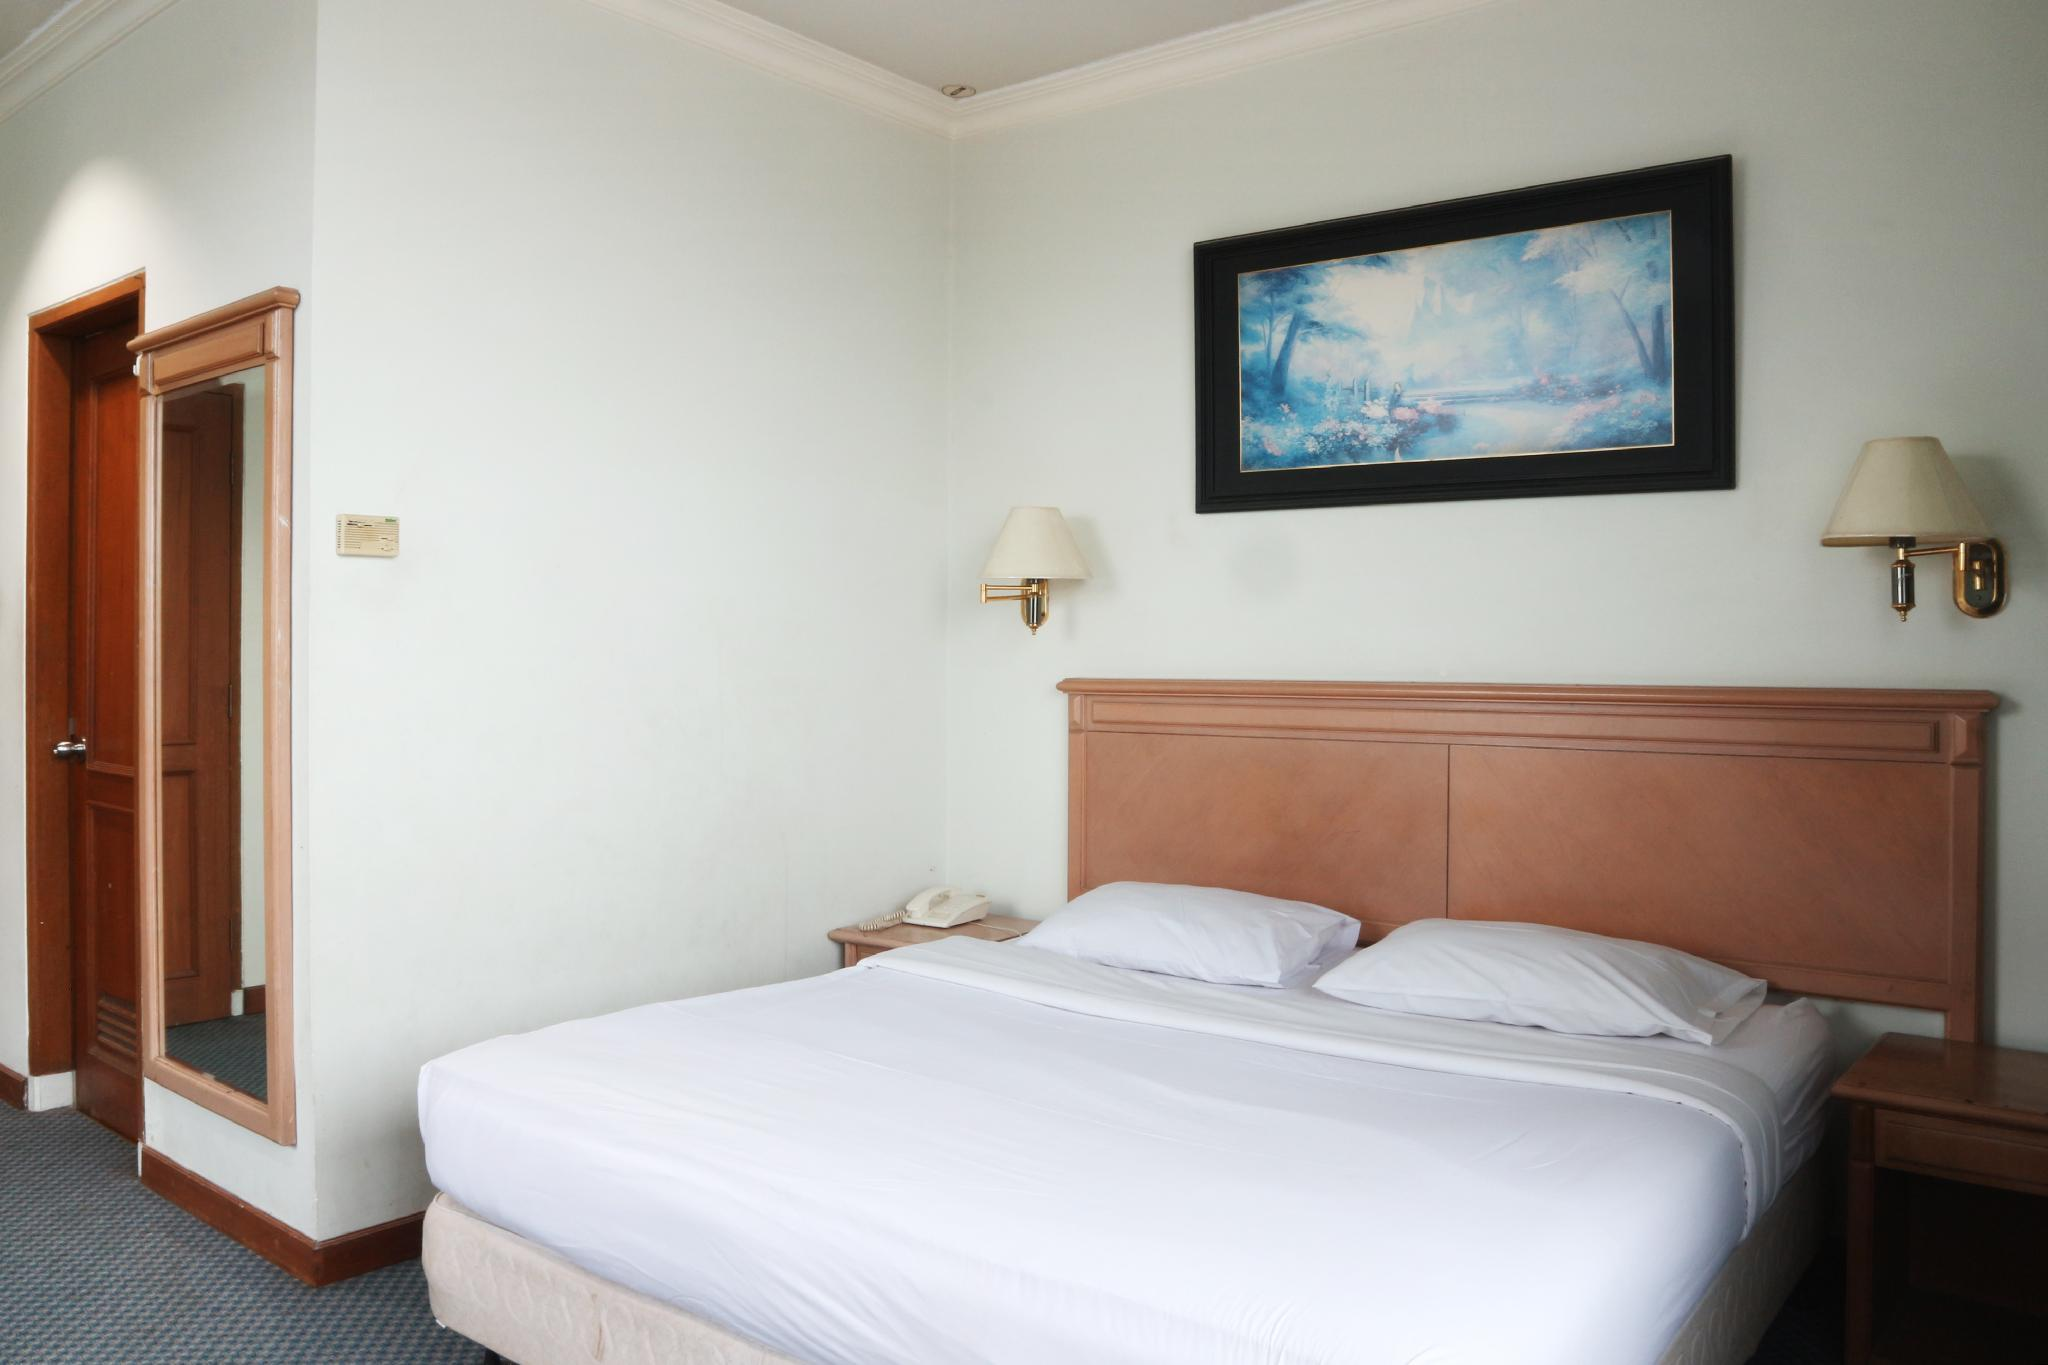 Double soba sa pogledom na planine (Double Room with Mountain View)